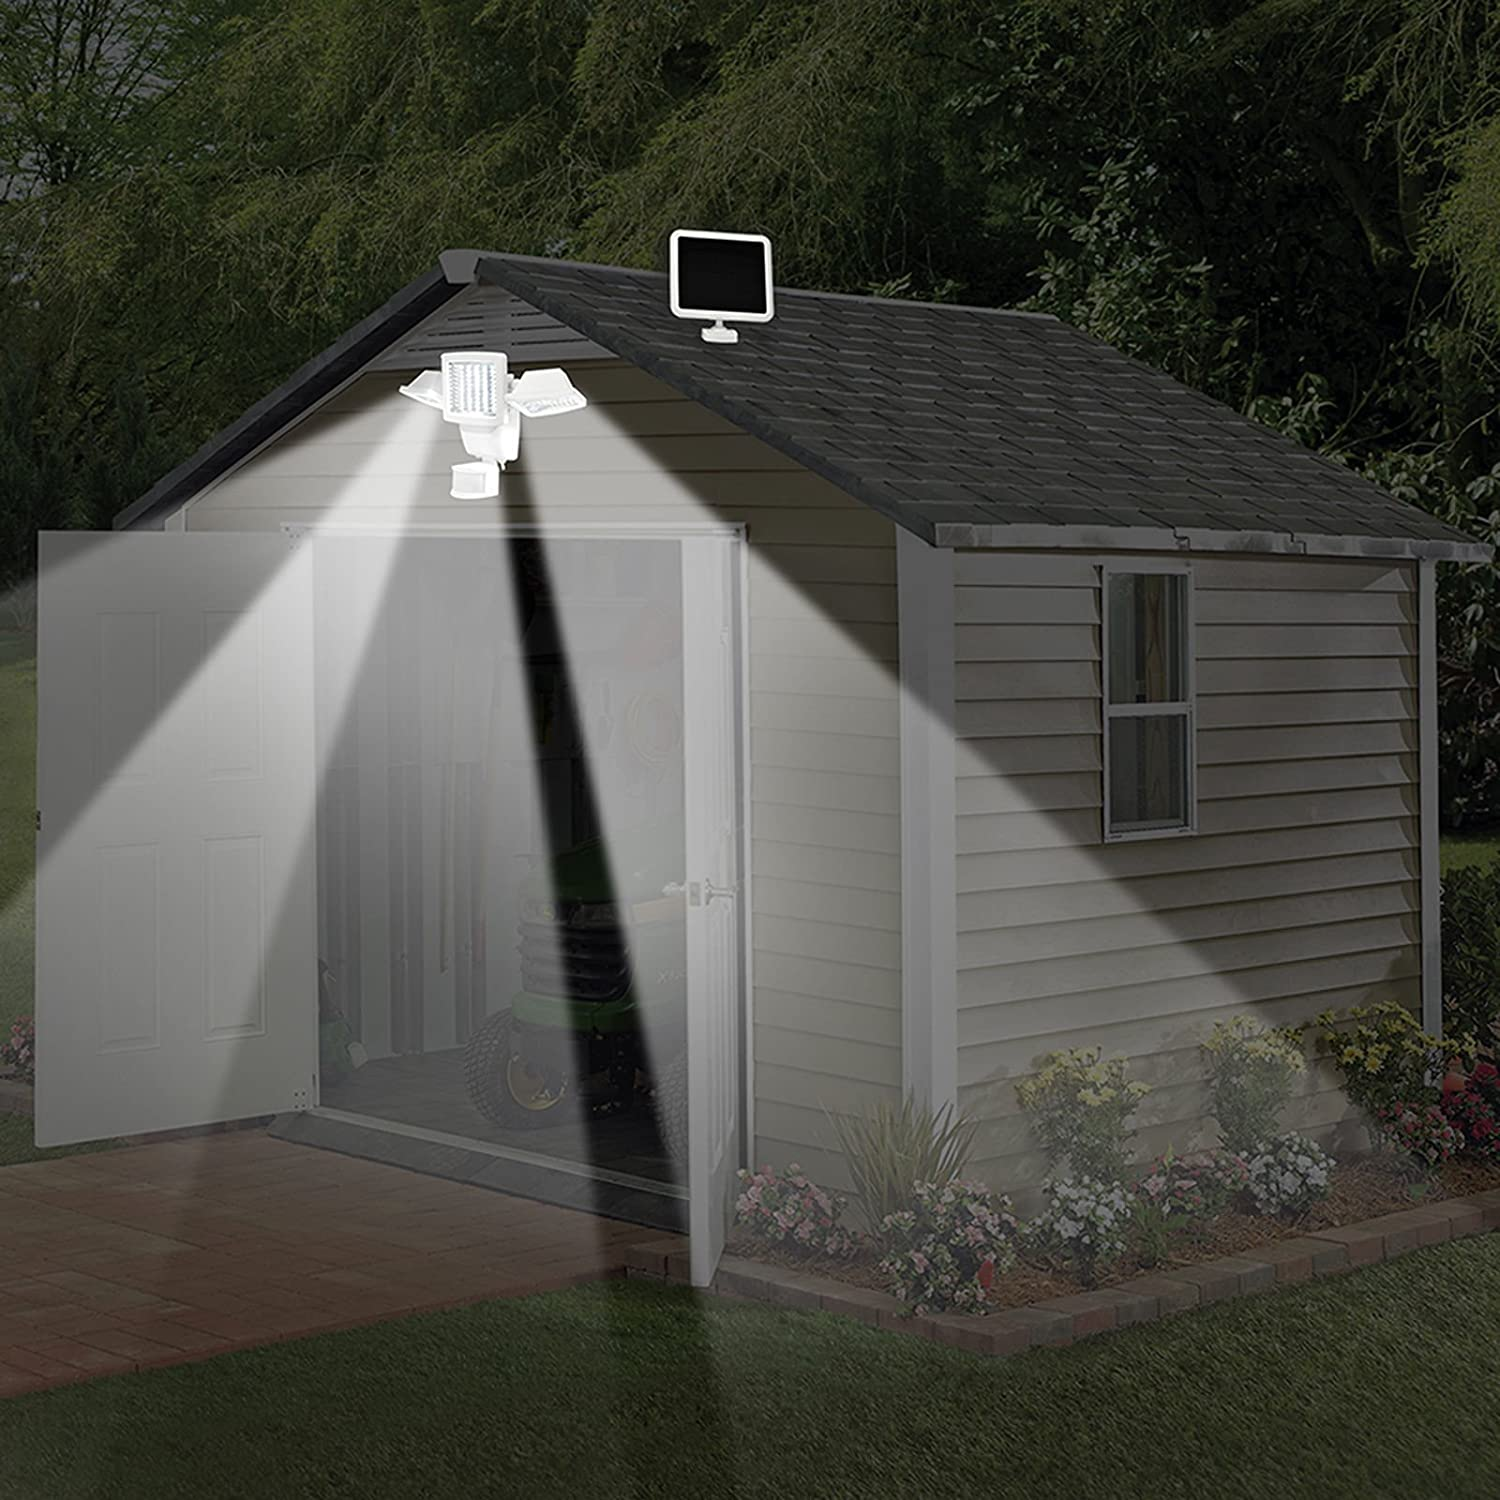 sunforce 82183 180 led solar motion light triple head 1200